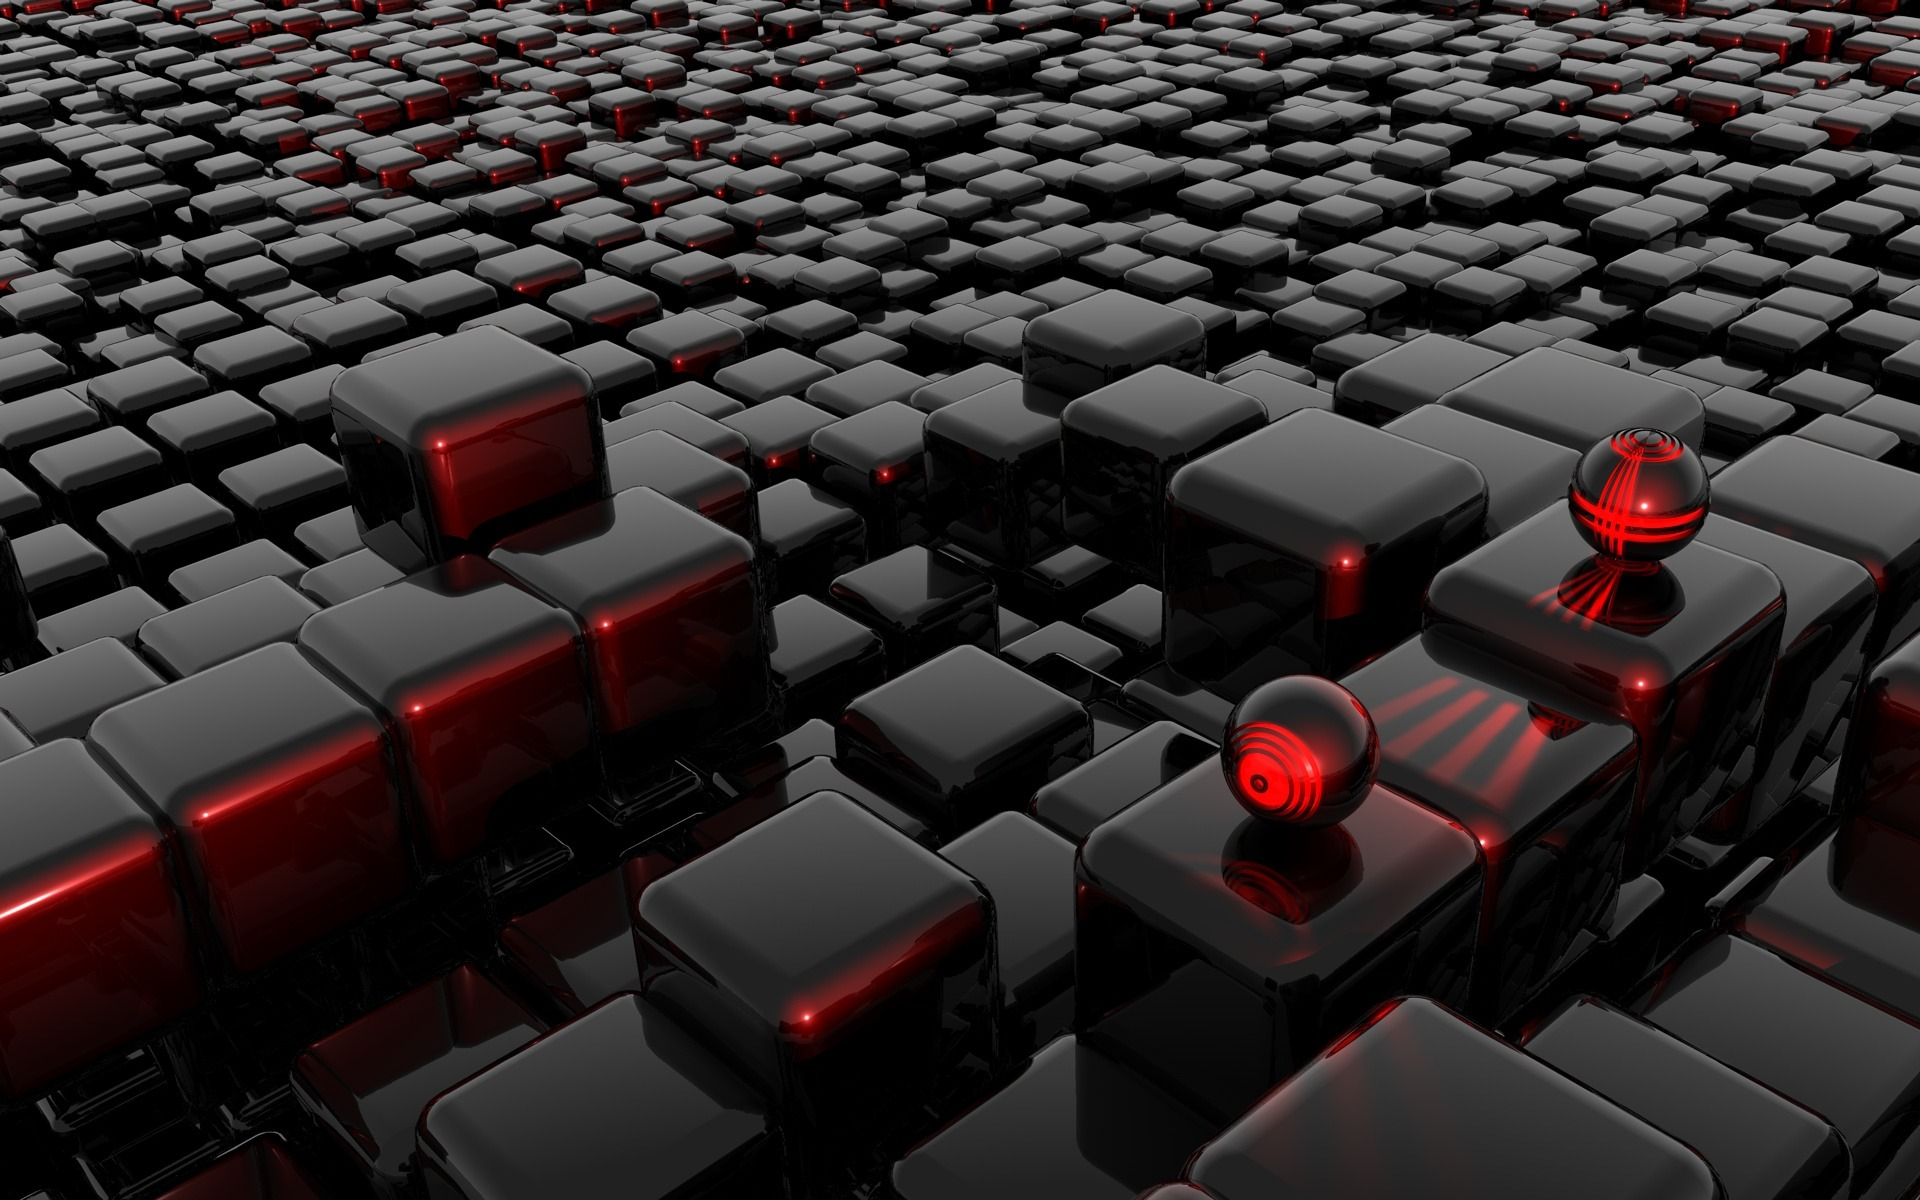 Download The Cube 3D HD Wallpaper 2121 Full Size 1920x1200